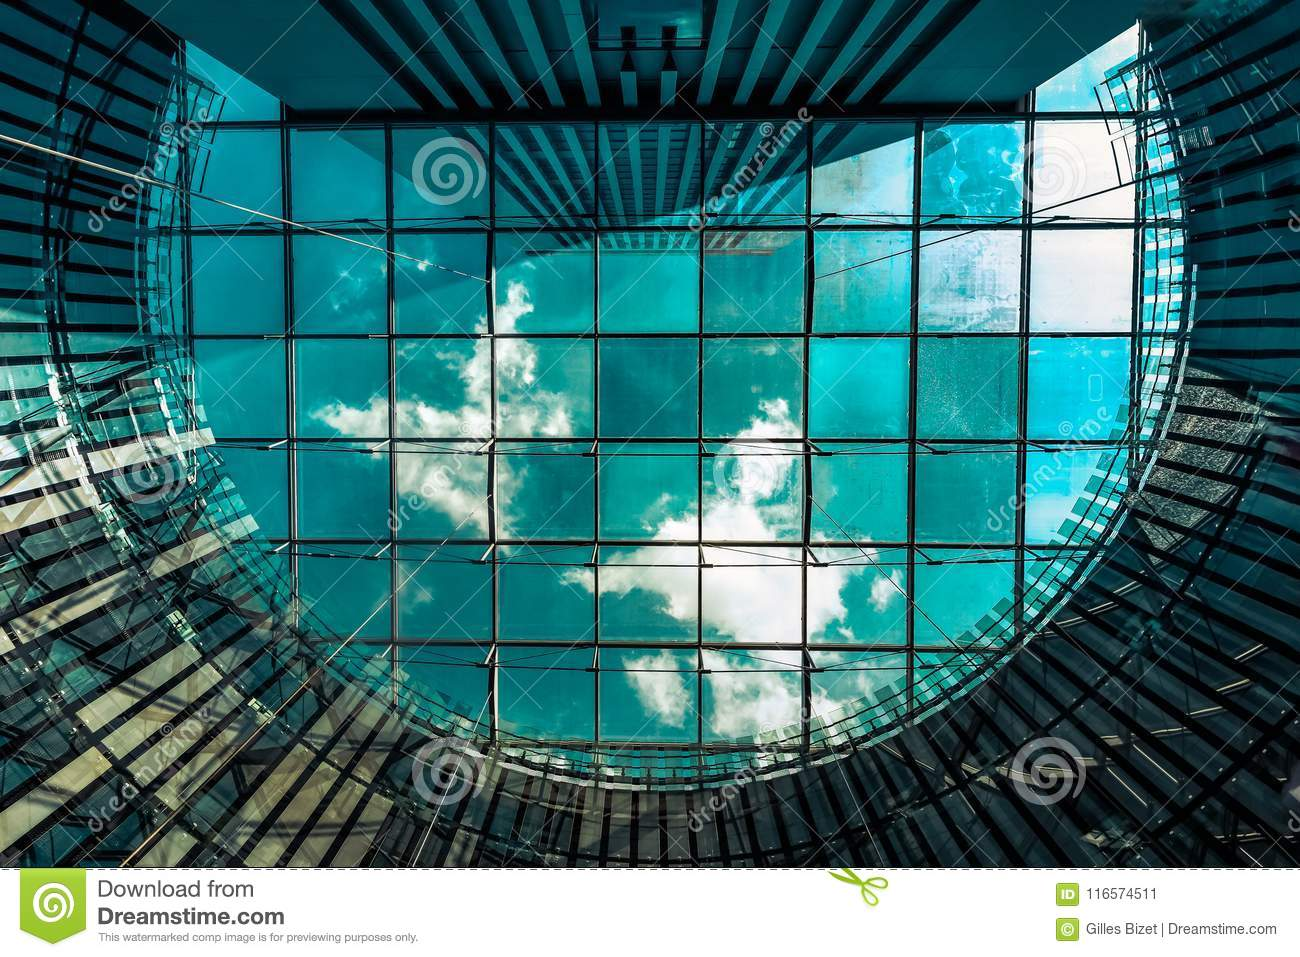 The sky through the glass roof